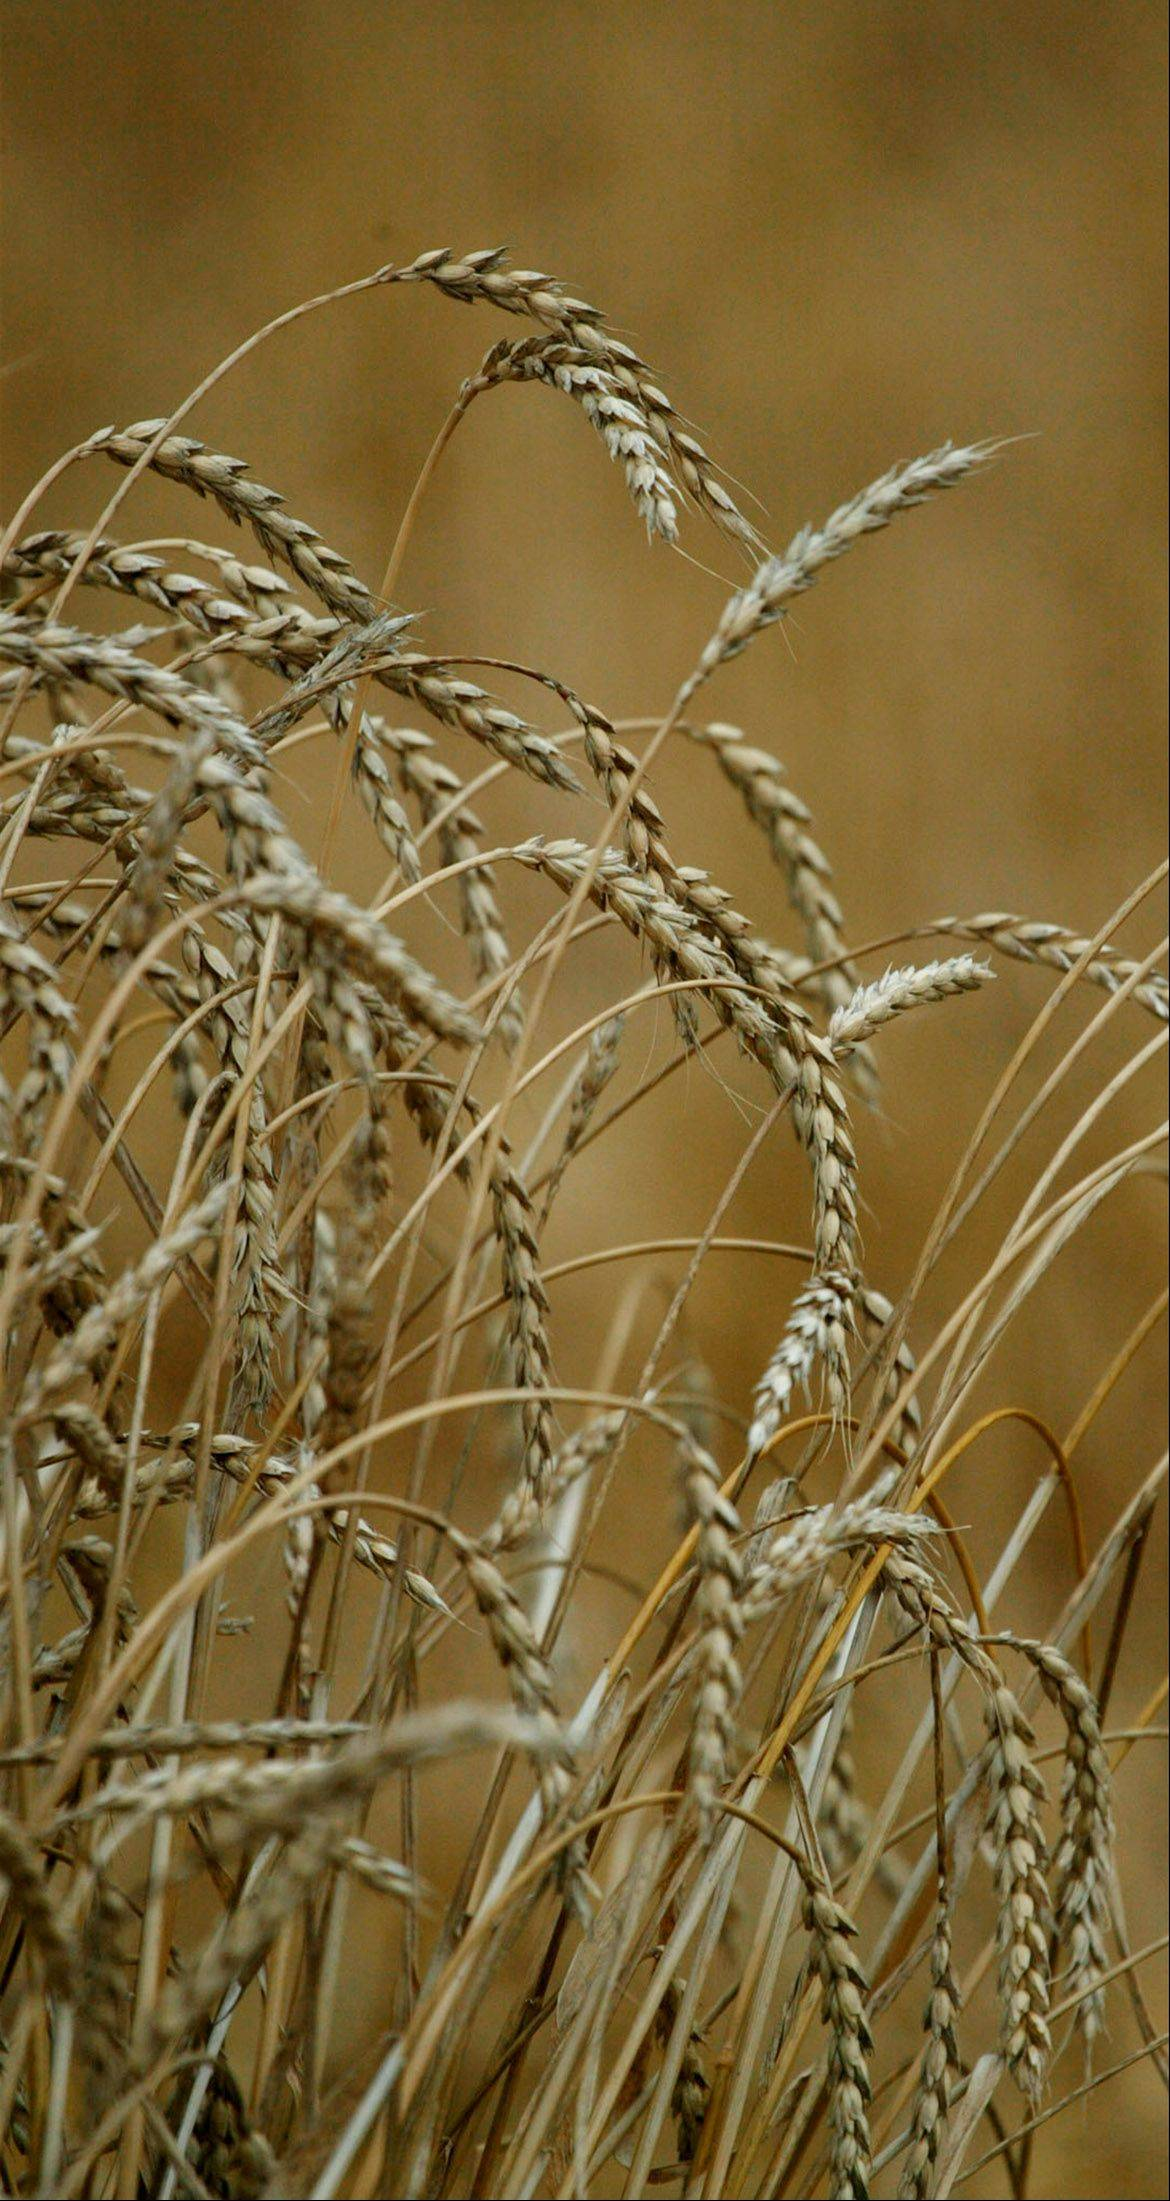 Farmers had planted 81 percent of the winter wheat crop as of Monday. Only half of the crop has emerged, which is 7 percentage points lower than average.